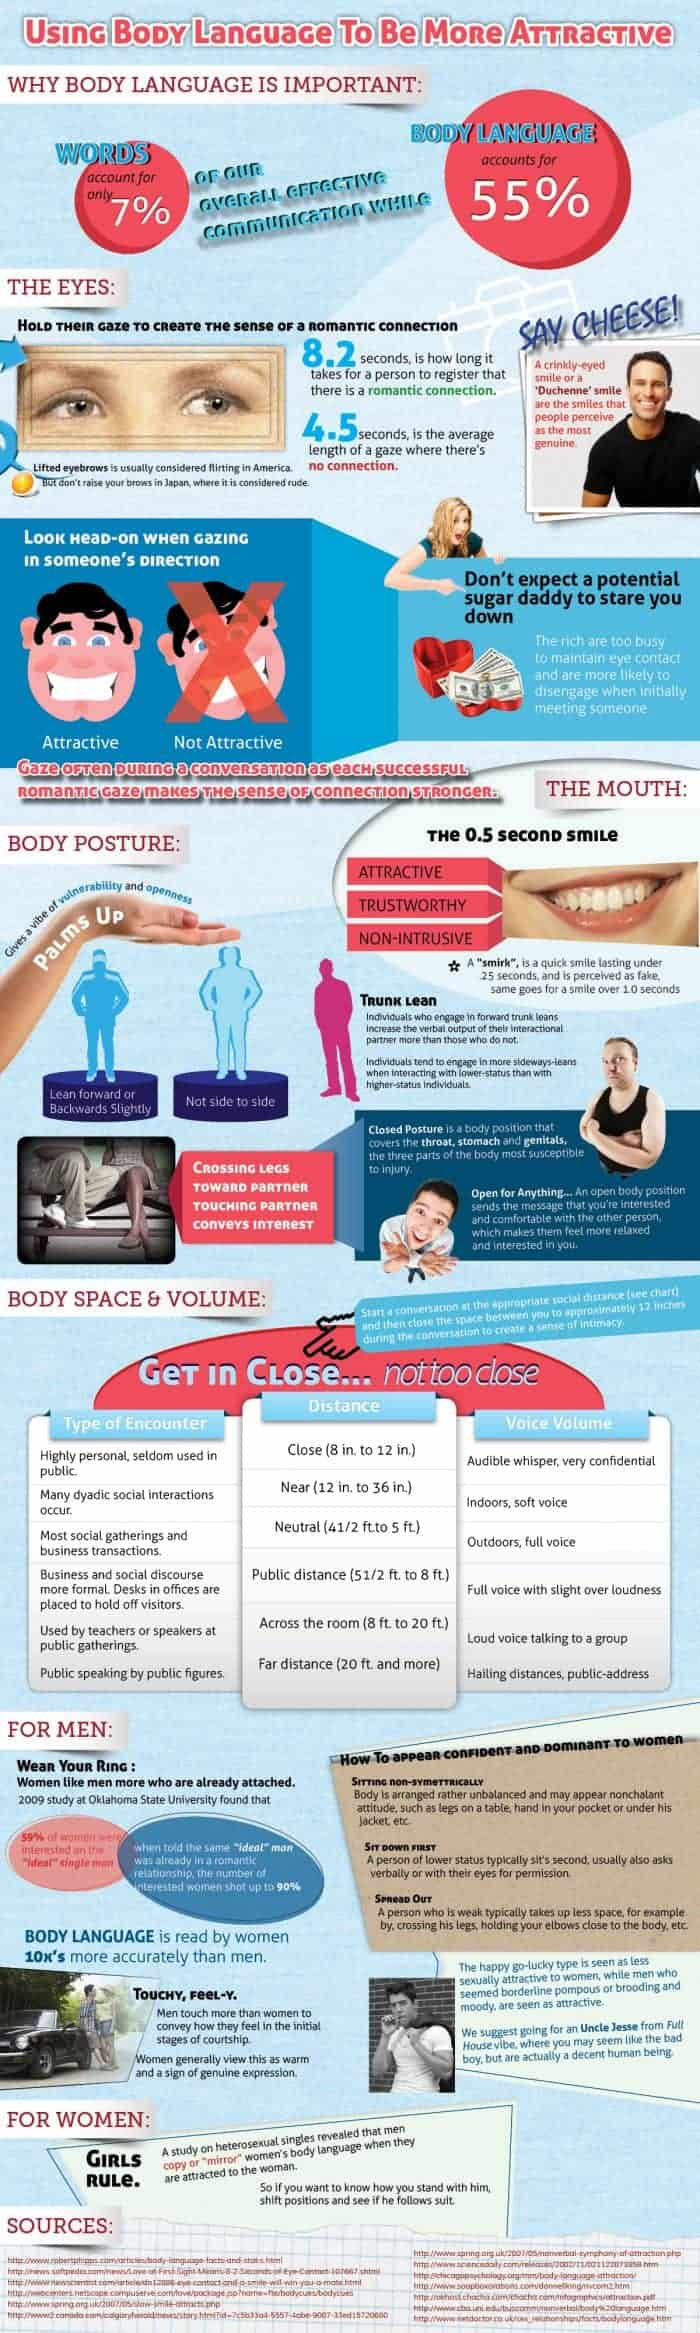 Improve Attractiveness with Body Language Infographic